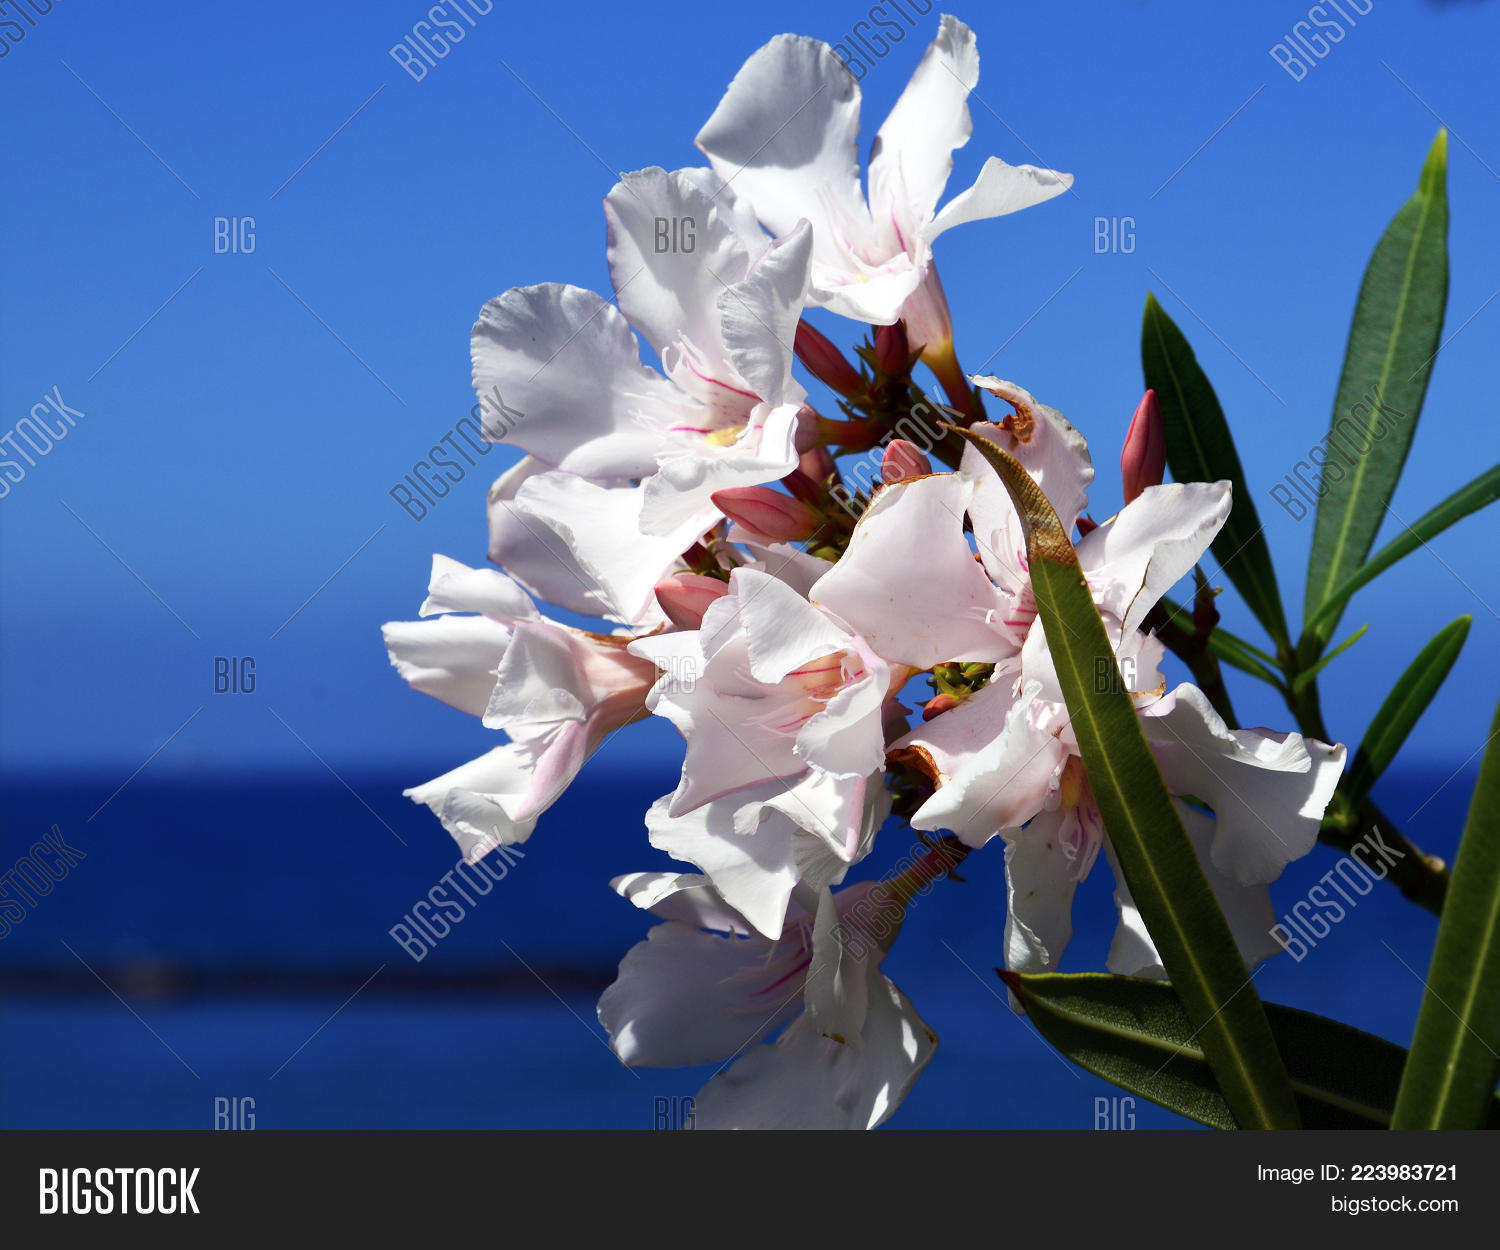 White Oleander Flowers Image Photo Free Trial Bigstock